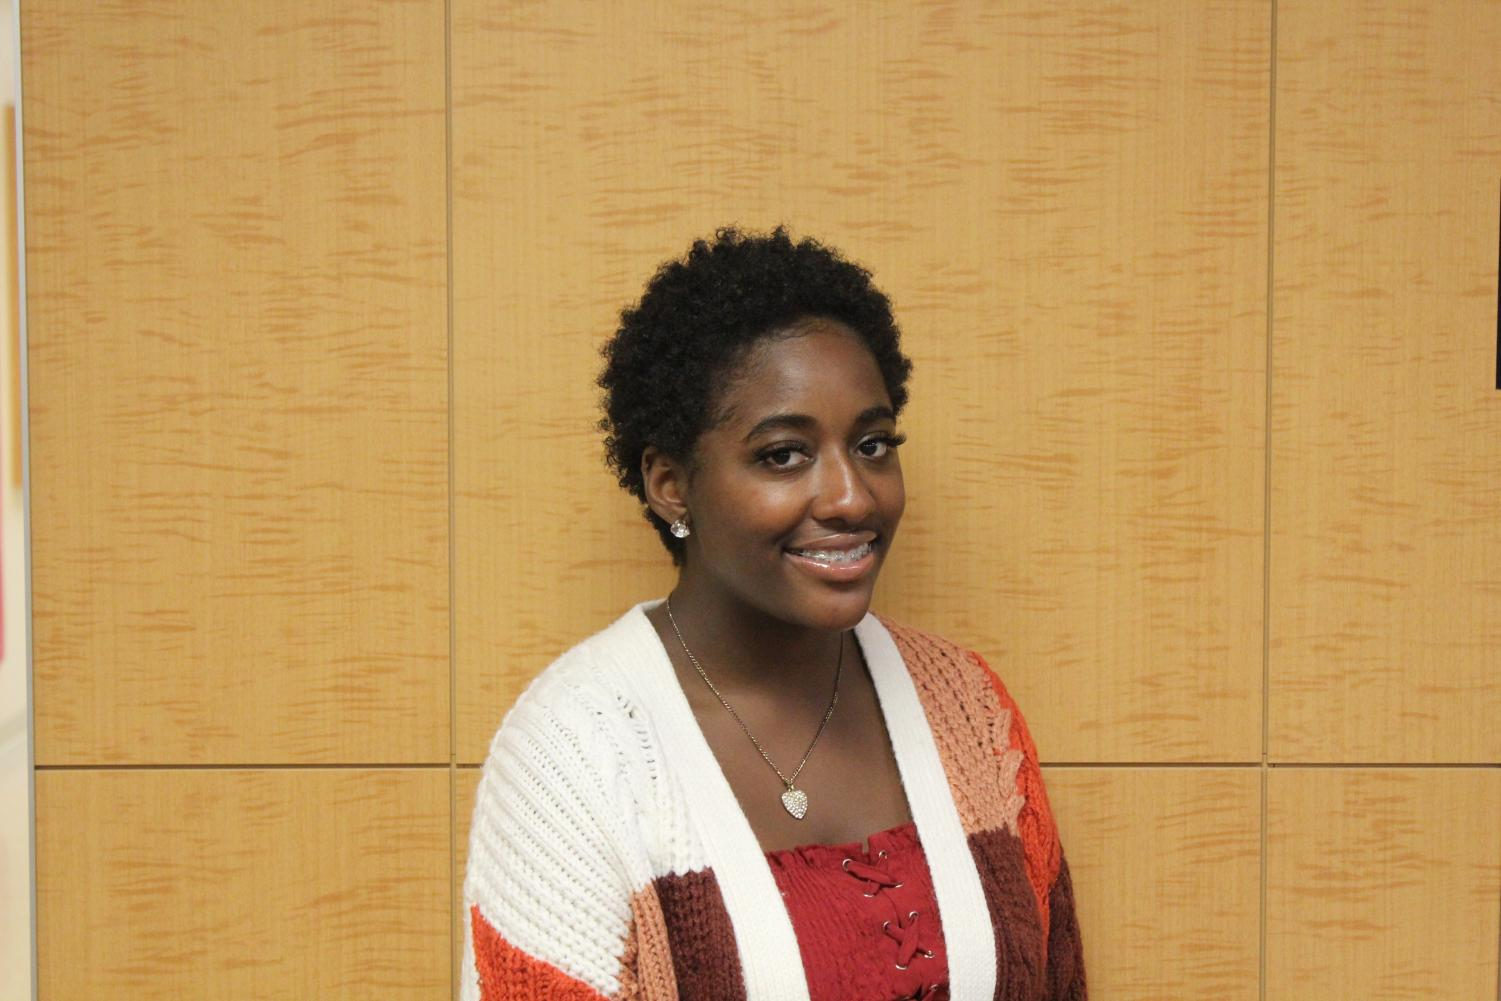 Diamond Jenkins ('19) is admired by her peers for her authenticity, service and perserverance.